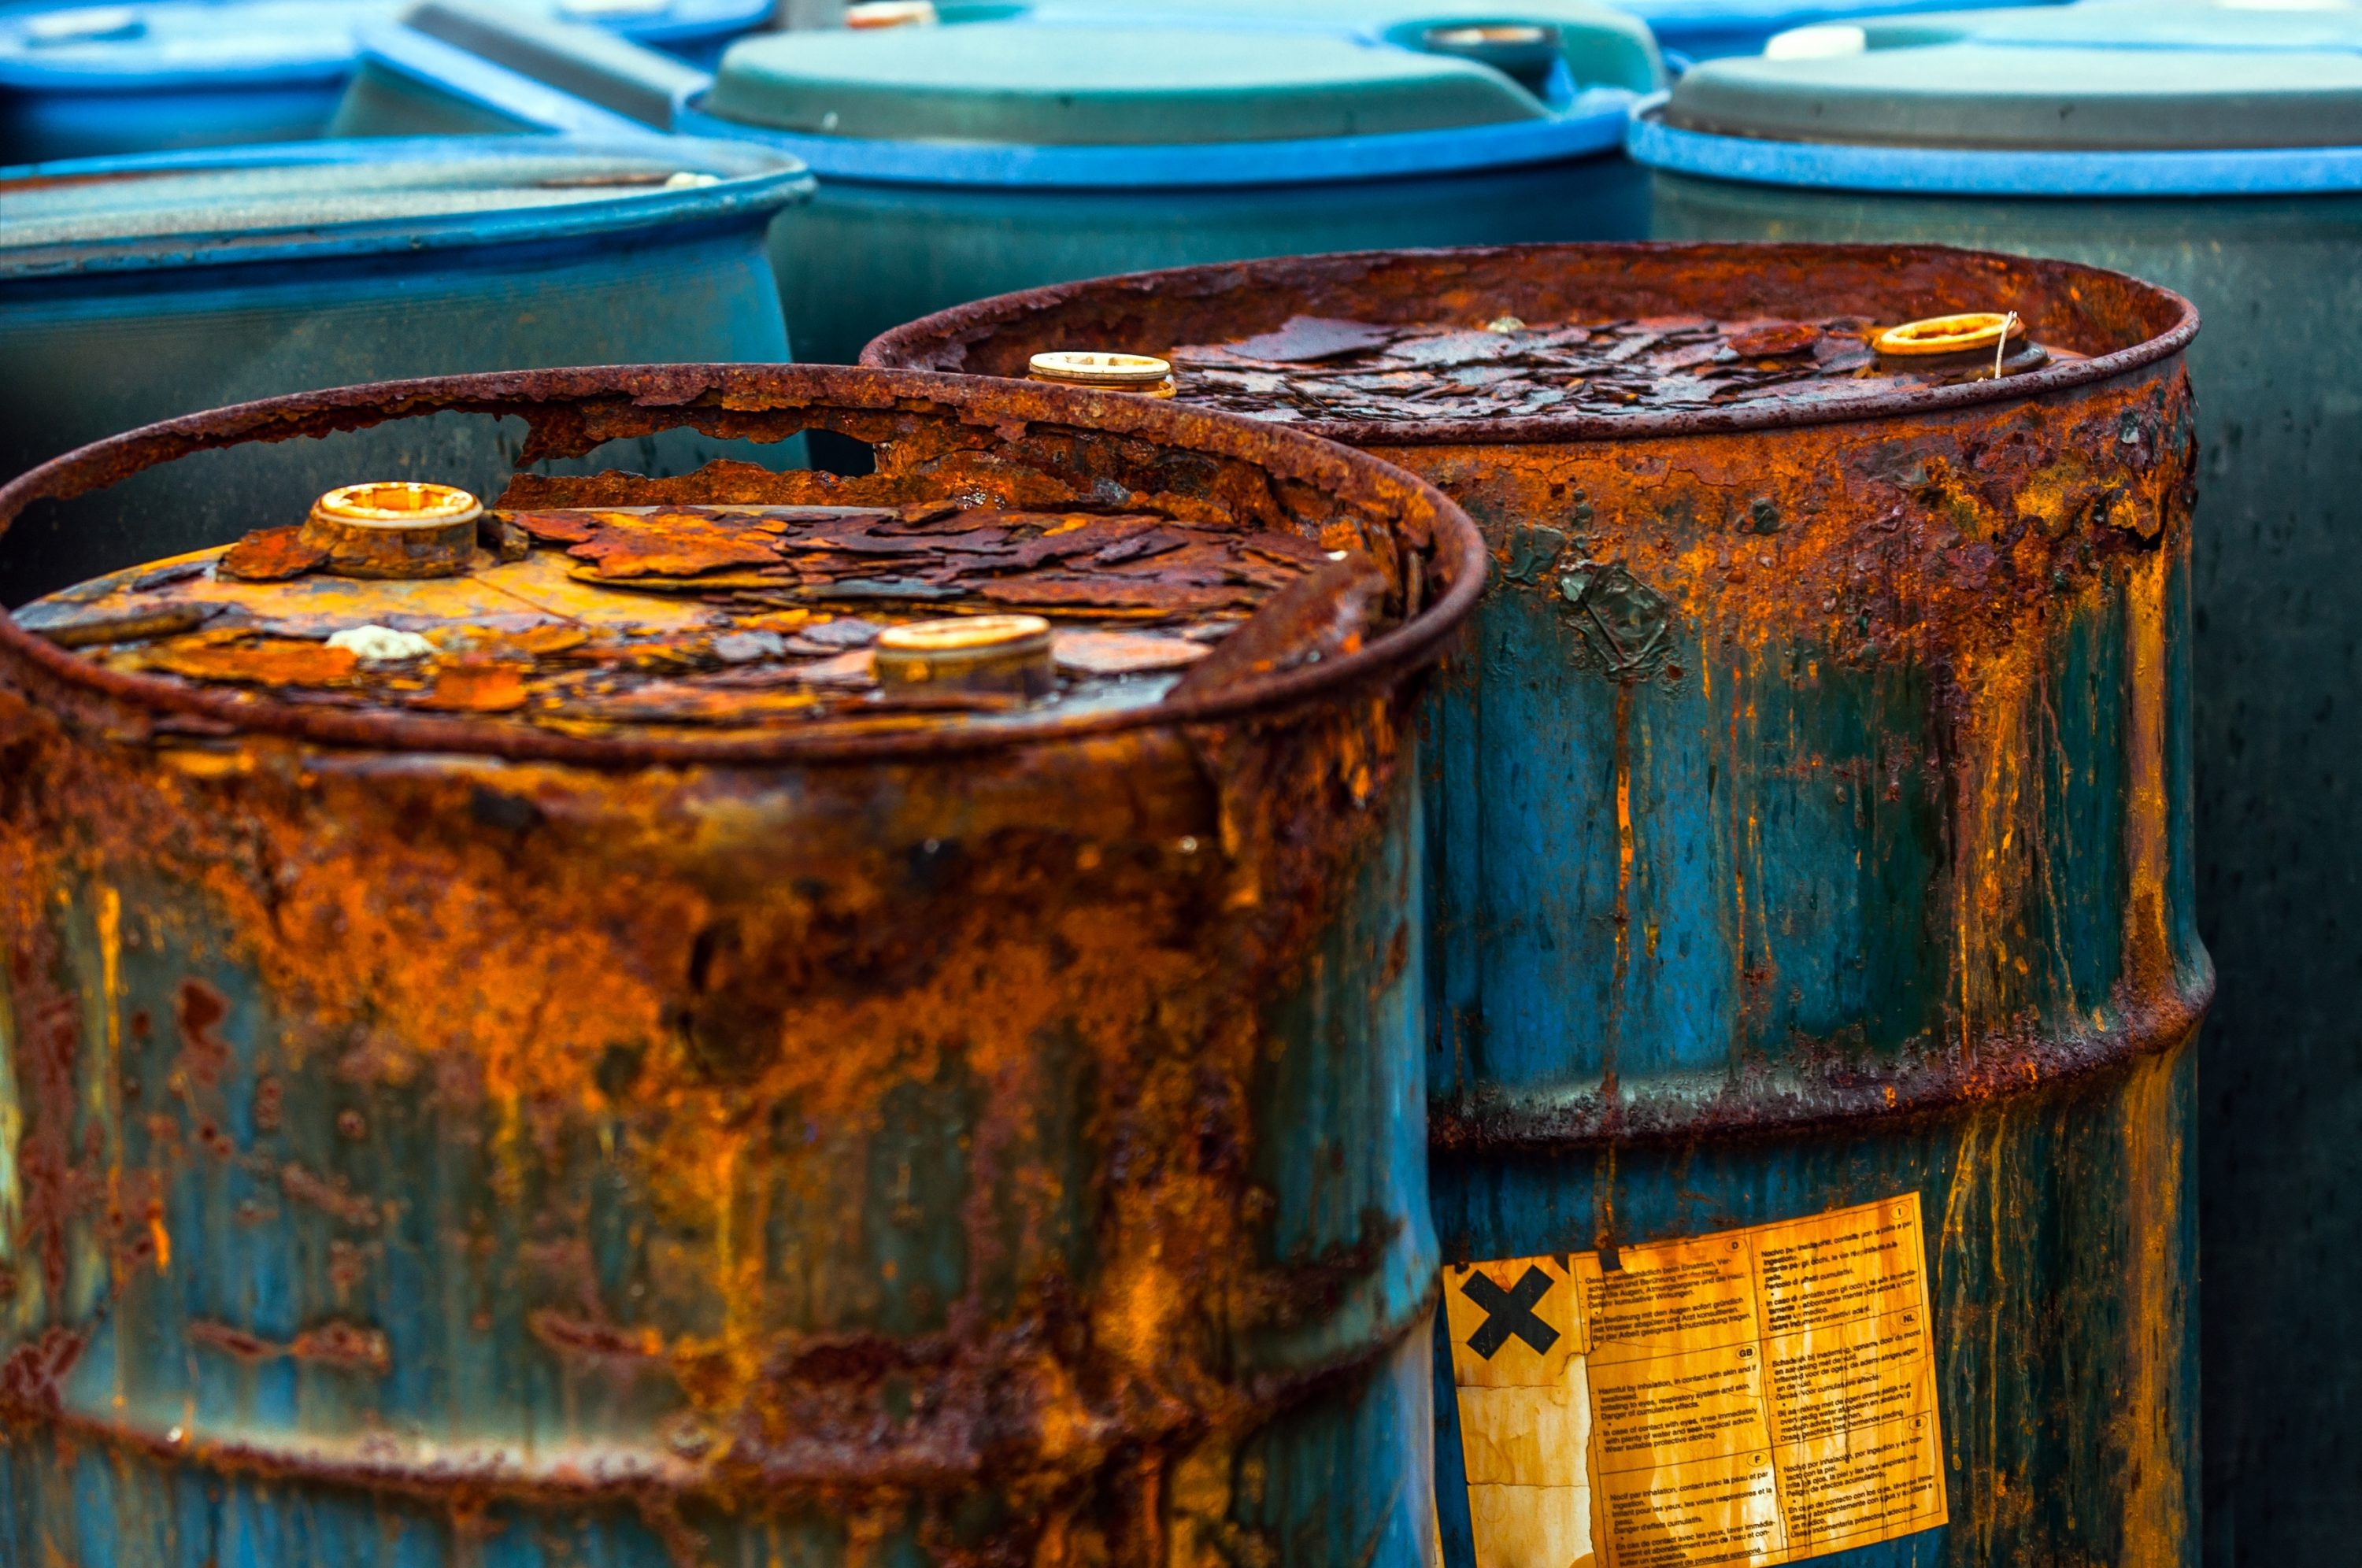 Chemical Accidents and Exposures